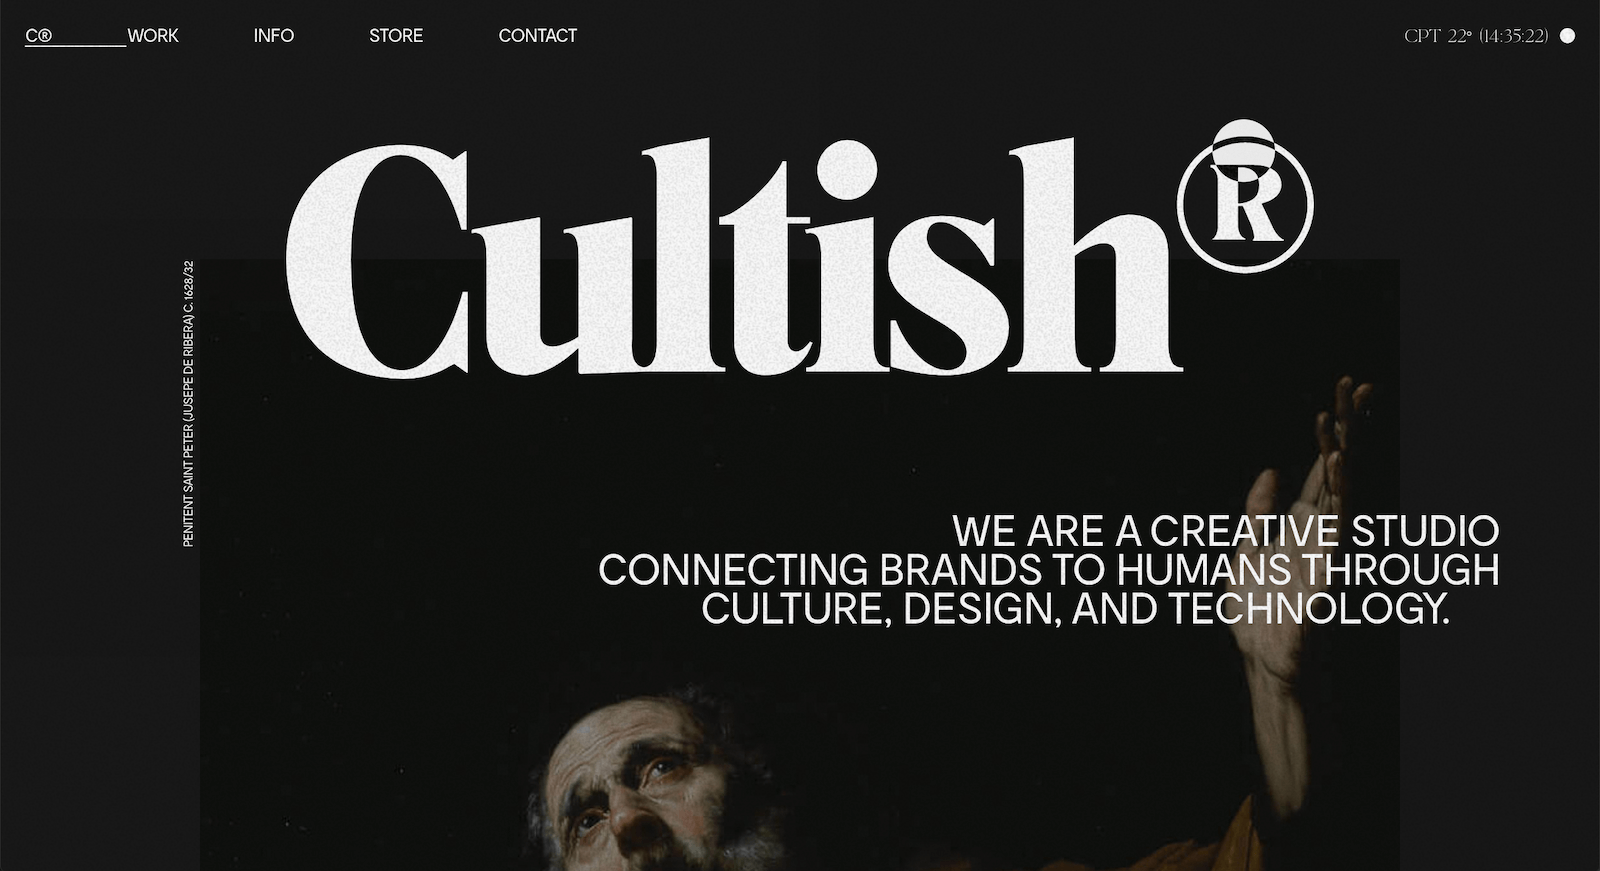 CULTISH Landing Page